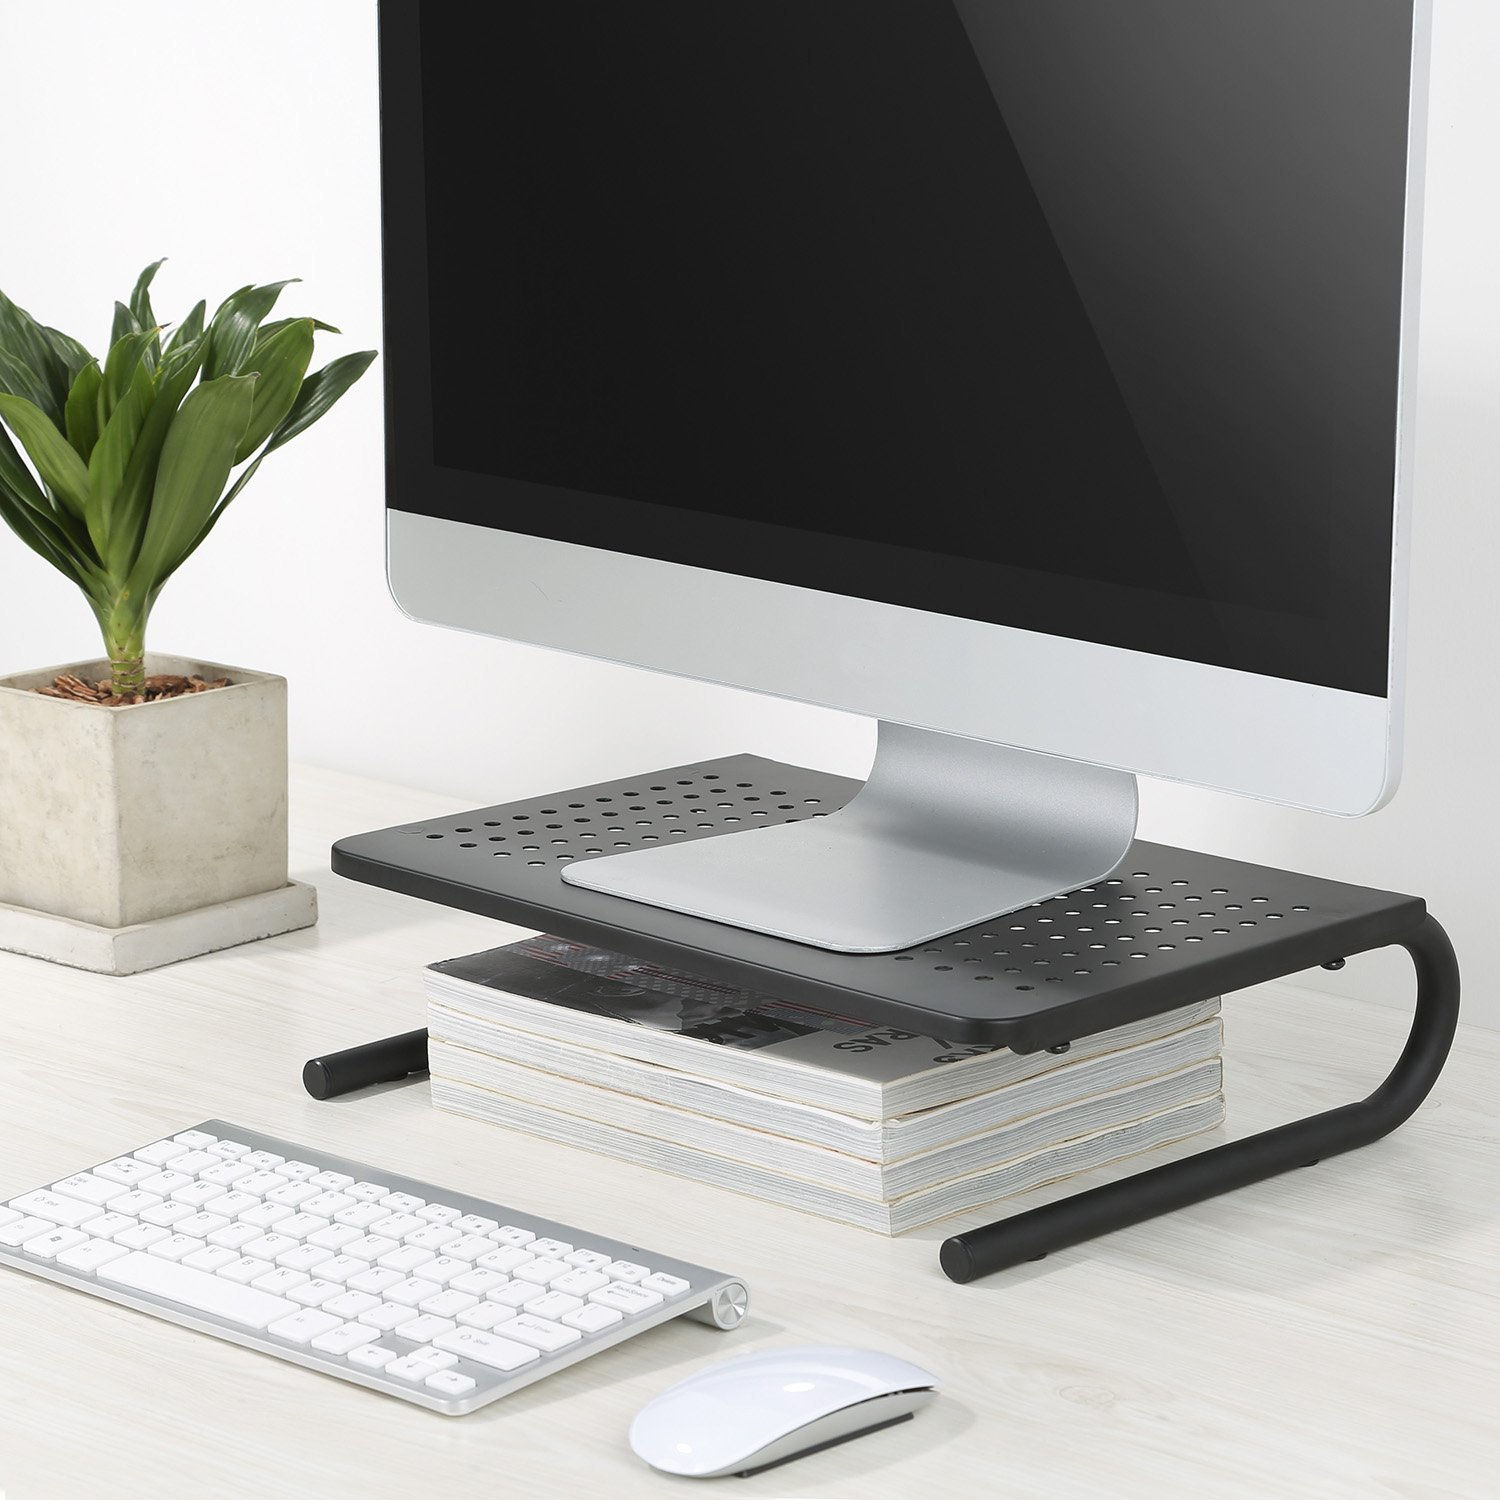 Monitor Stand Riser with Vented Metal for Computer, Laptop, Desk, iMac, Printer with 14.5 Platform 4 inch Height (Black, 2 Pack) by HUANUO (Image #4)